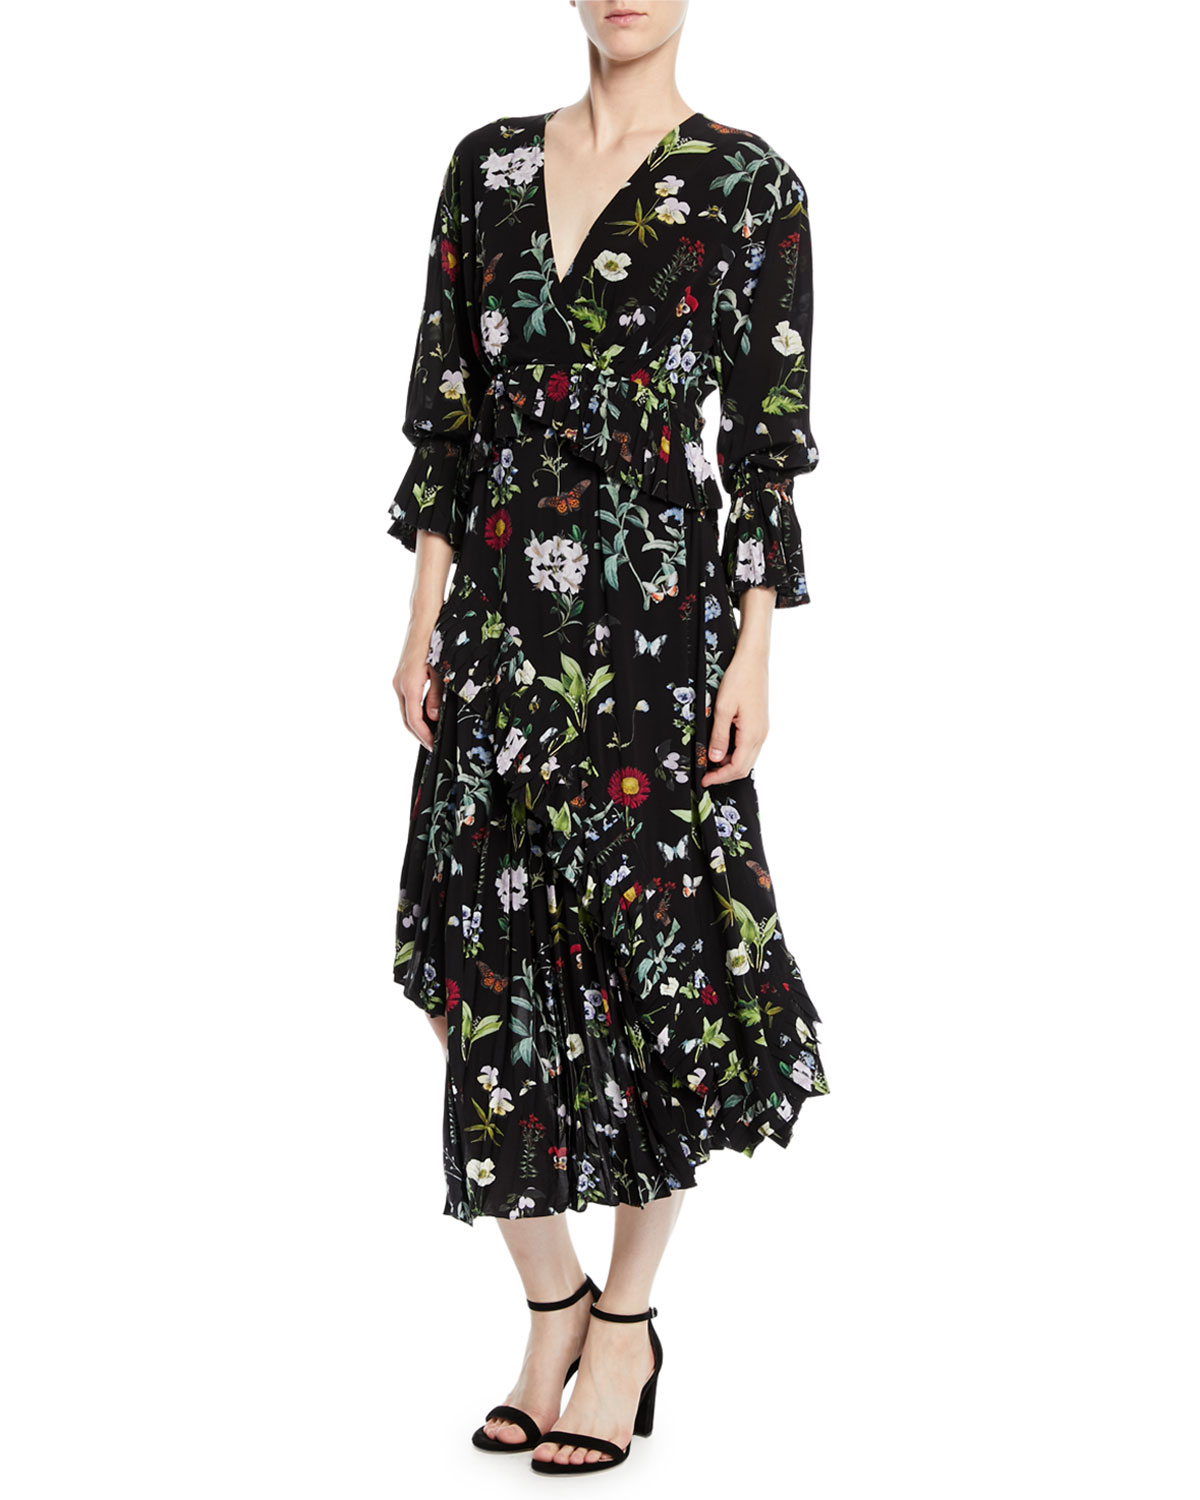 Analena Pleated Floral V-Neck Midi Dress